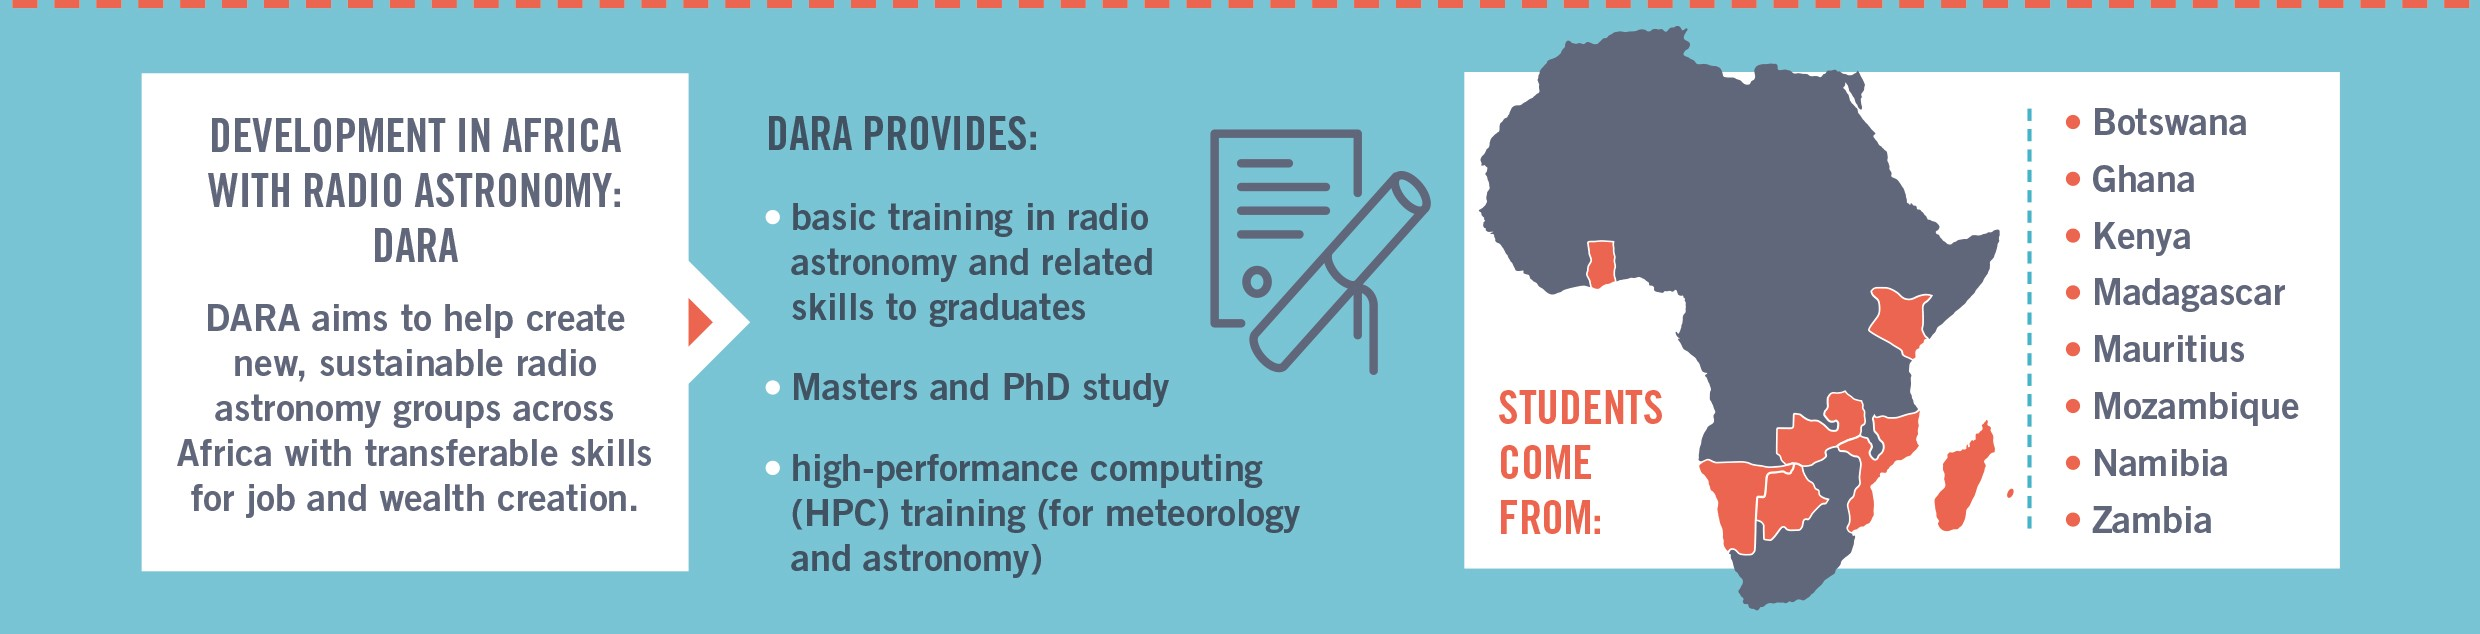 DARA is providing training in radio astronomy and computing and Masters and PhD opportunities in 8 African countries